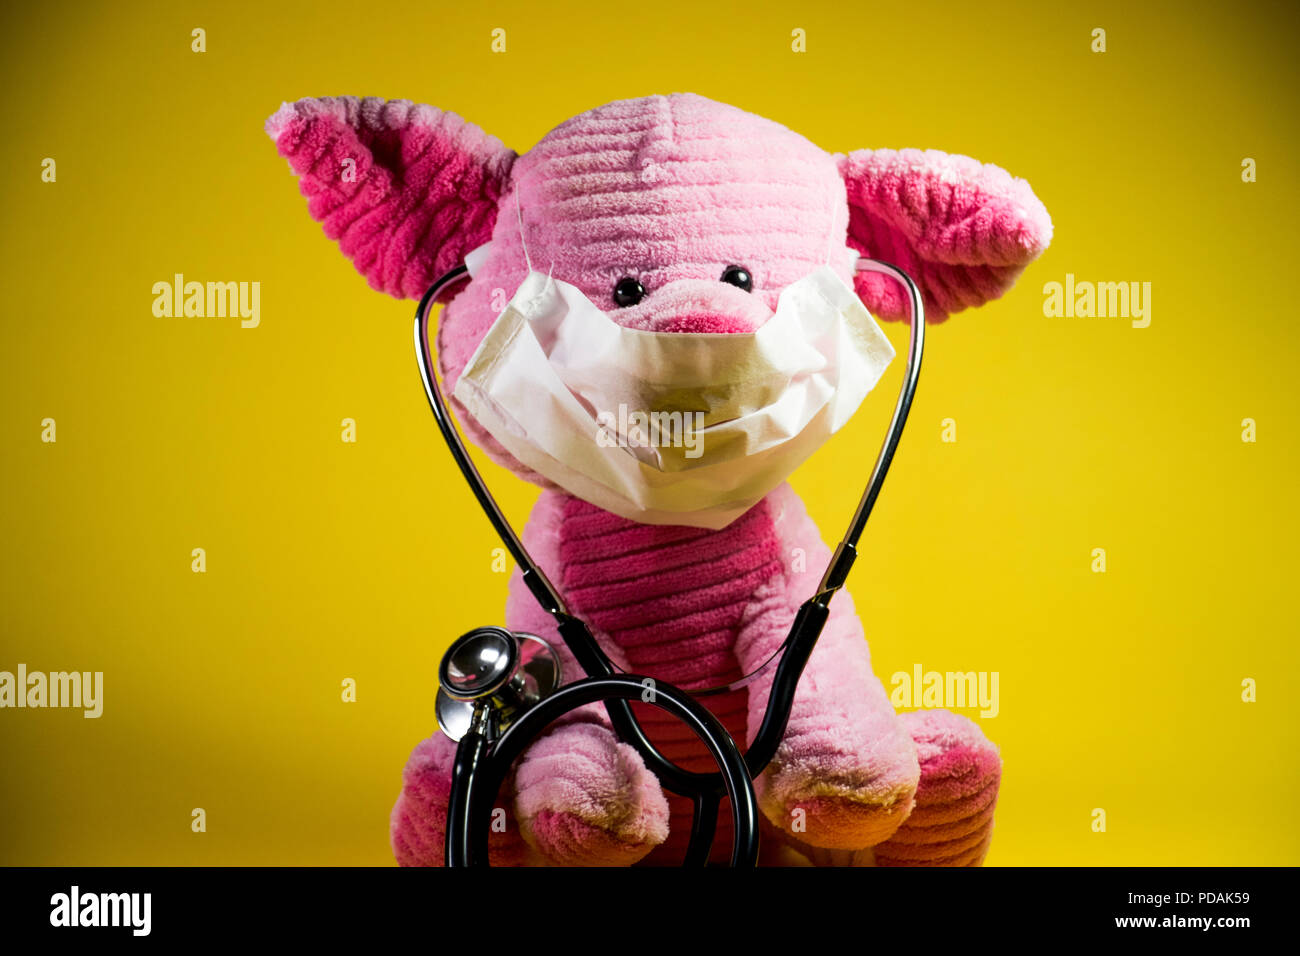 Swine flu concept. Plush toy with beady eyes and pig snout. - Stock Image